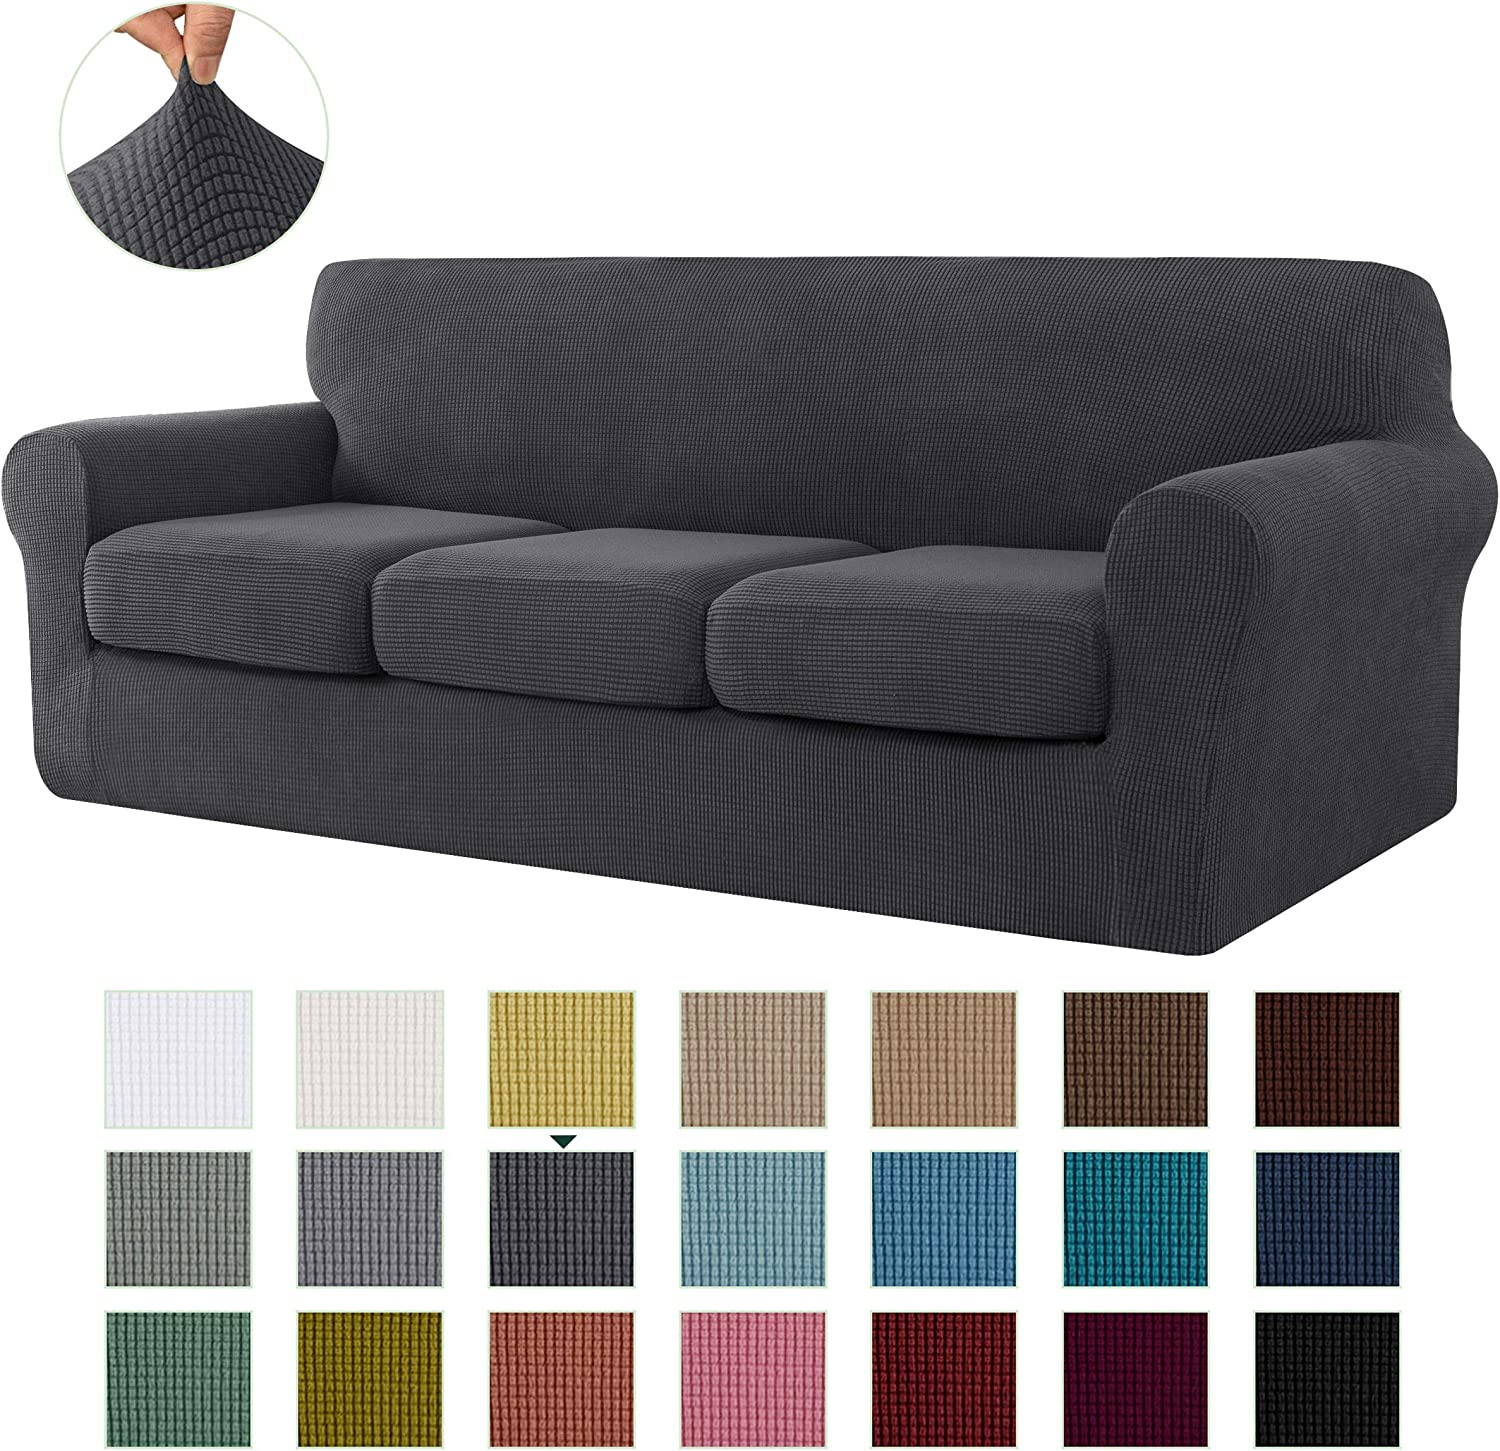 CHUN YI Stretch Sofa Slipcover Separate Cushion Couch Cover, Armchair Loveseat Replacement Coat for Ektorp Universal Sleeper, Checks Spandex Jacquard Fabric (Large,Gray)